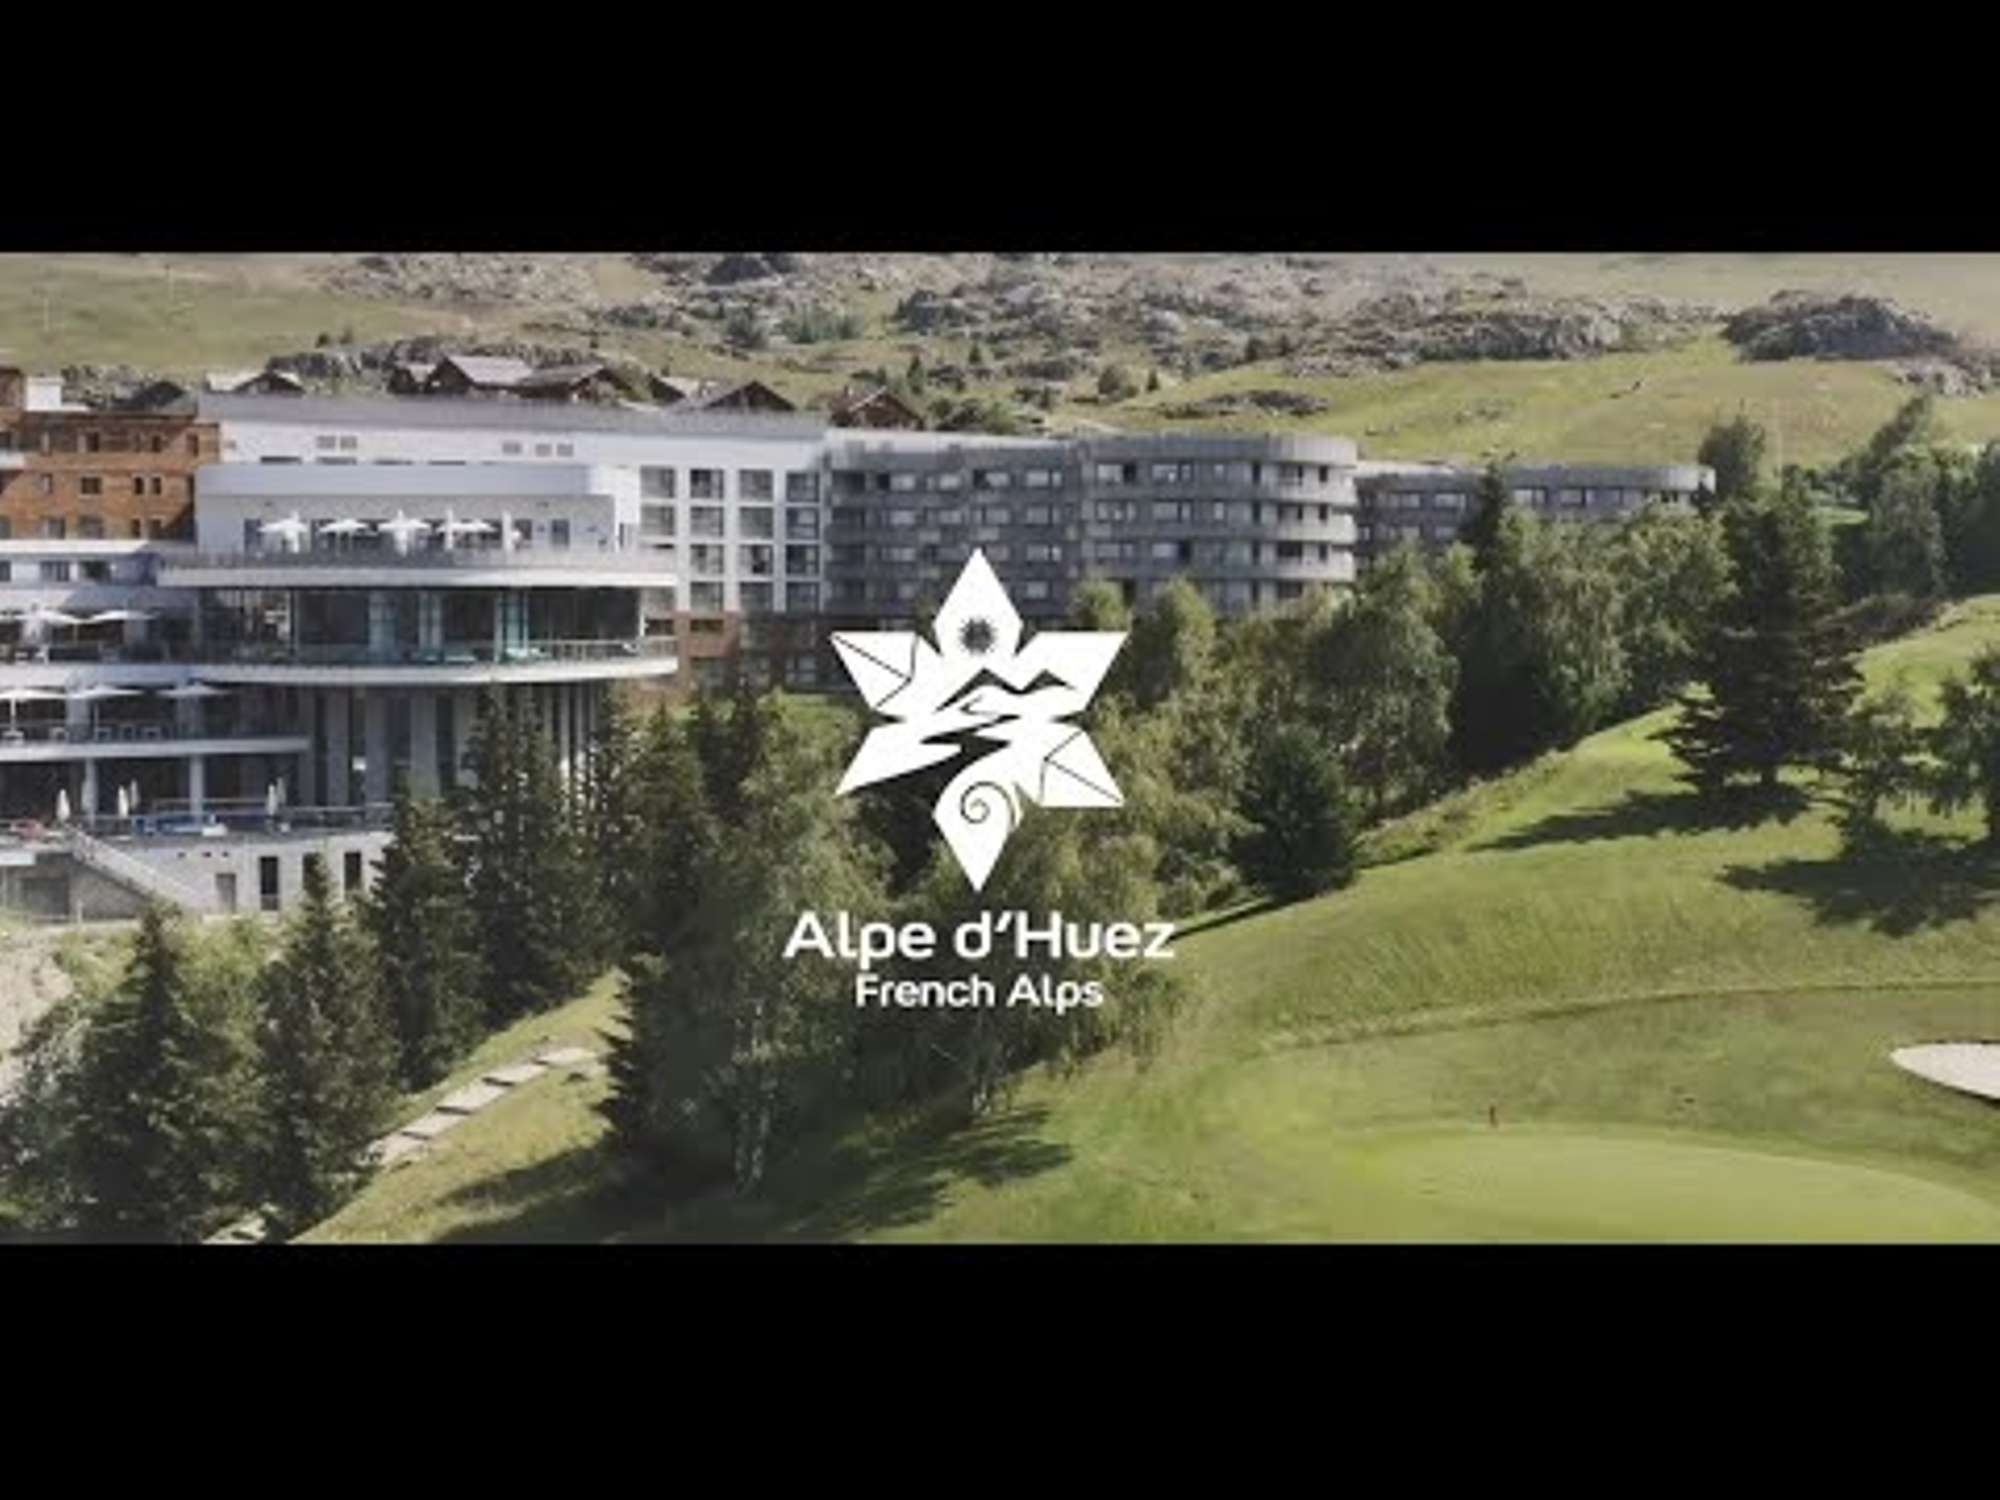 Open Alpe d'Huez videos slideshow gallery at 1